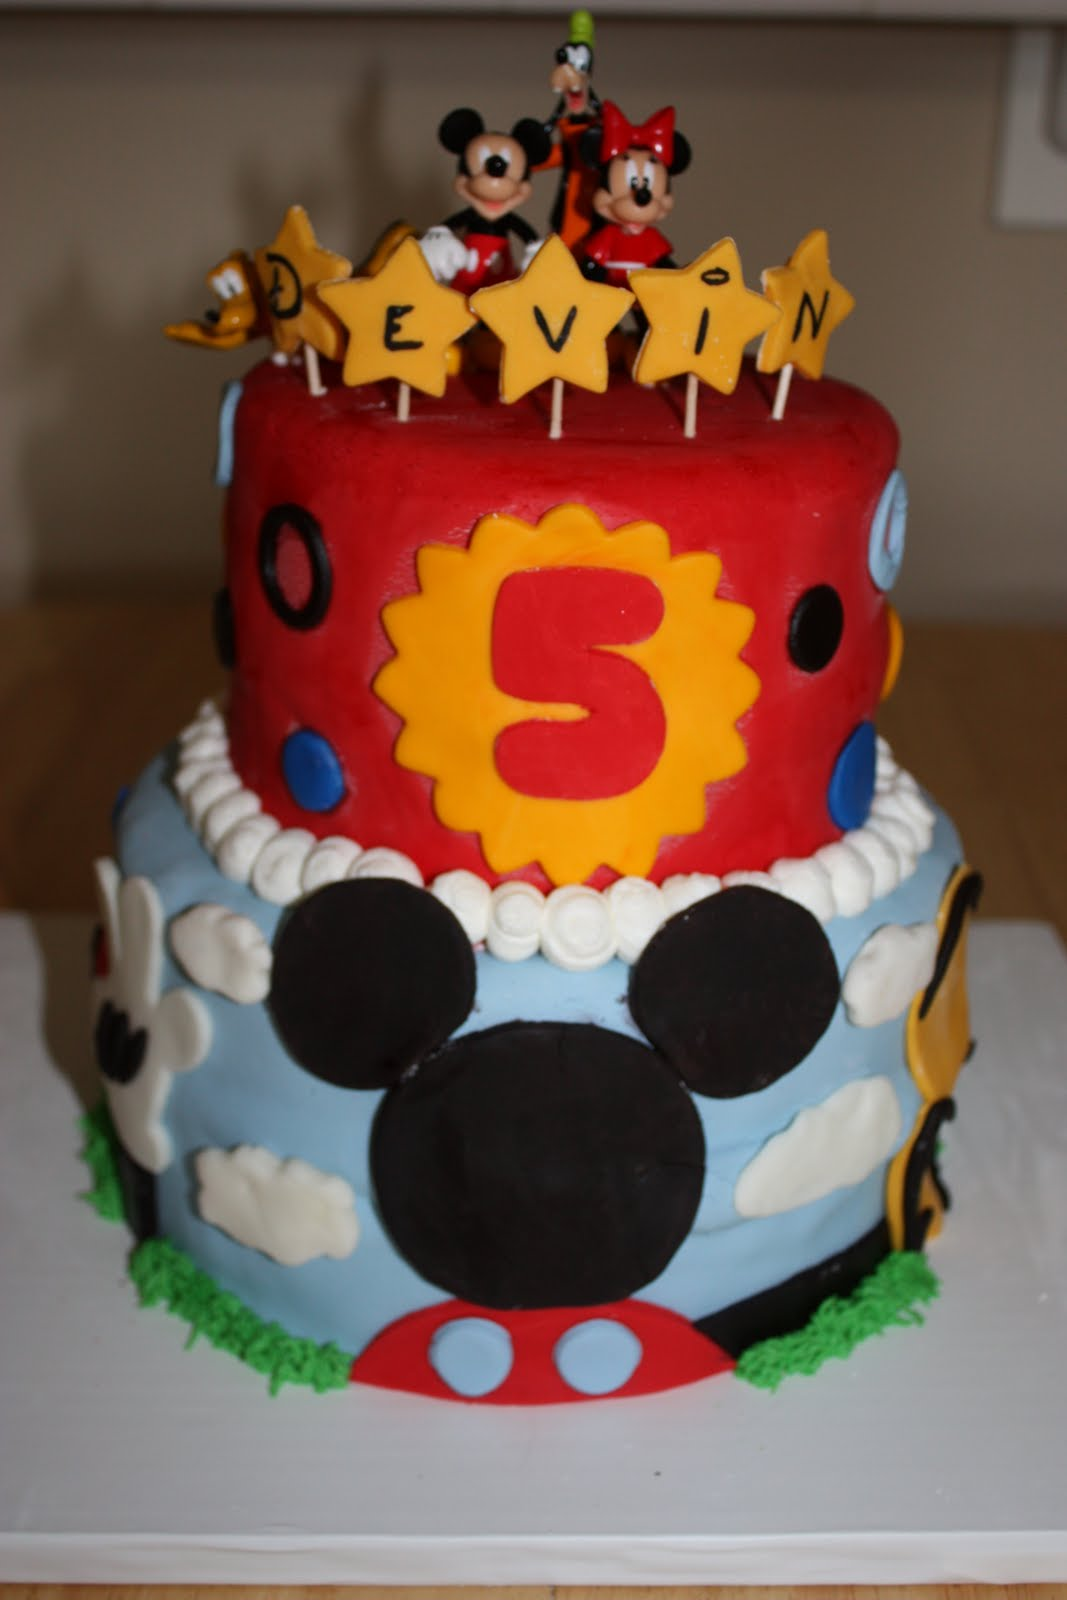 7 16 Birthday Cakes For Boys 5 Years Old Photo 5 Year Old Boy